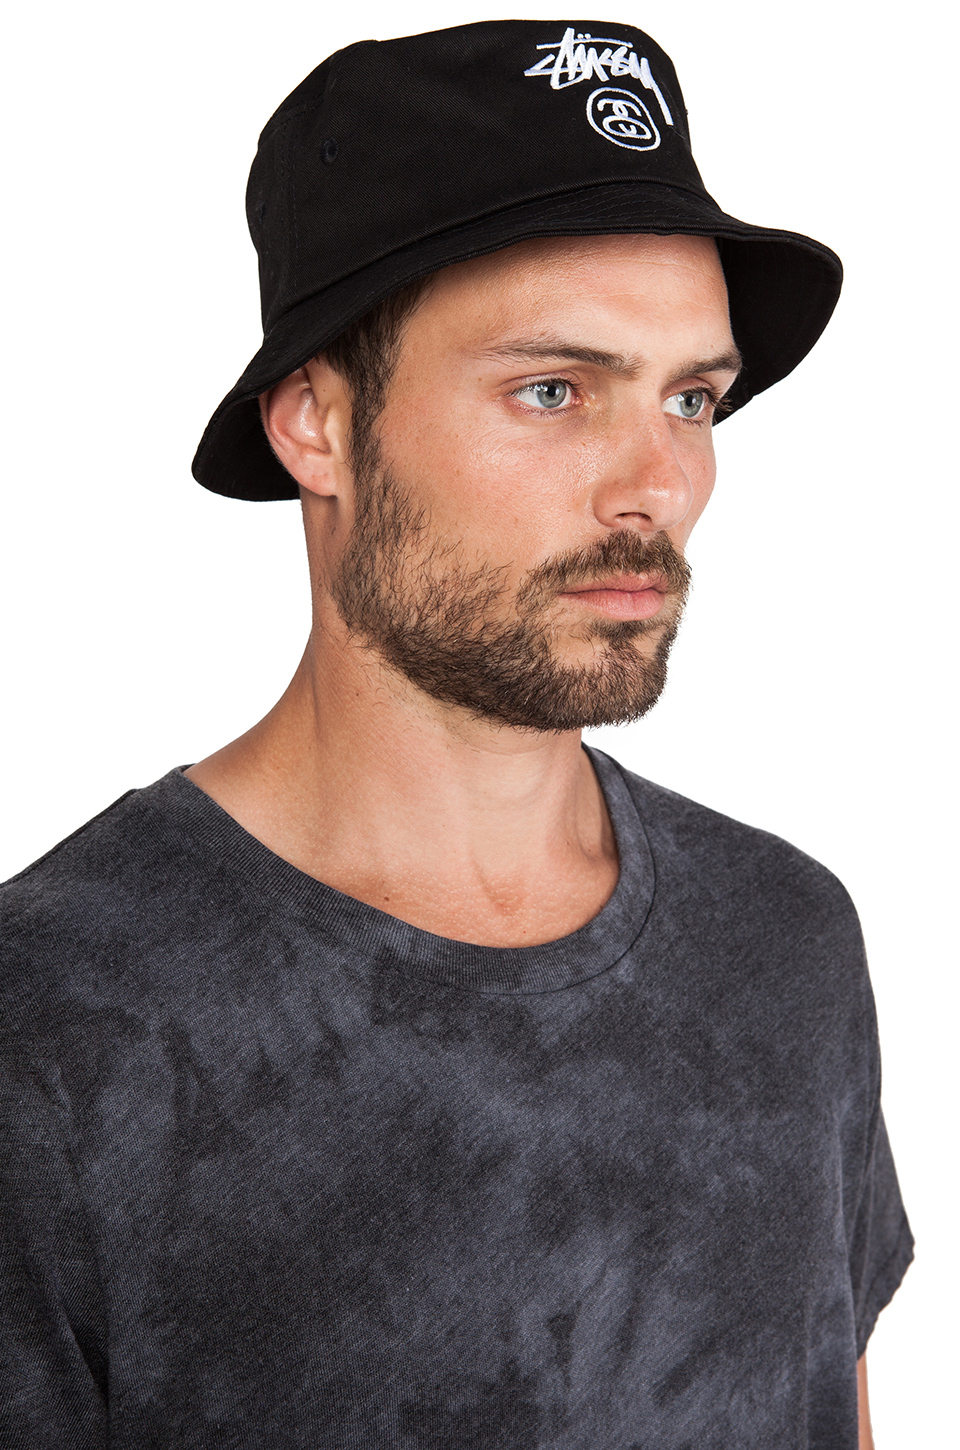 41721a96480 Lyst - Stussy Stock Lock Bucket Hat in Black for Men